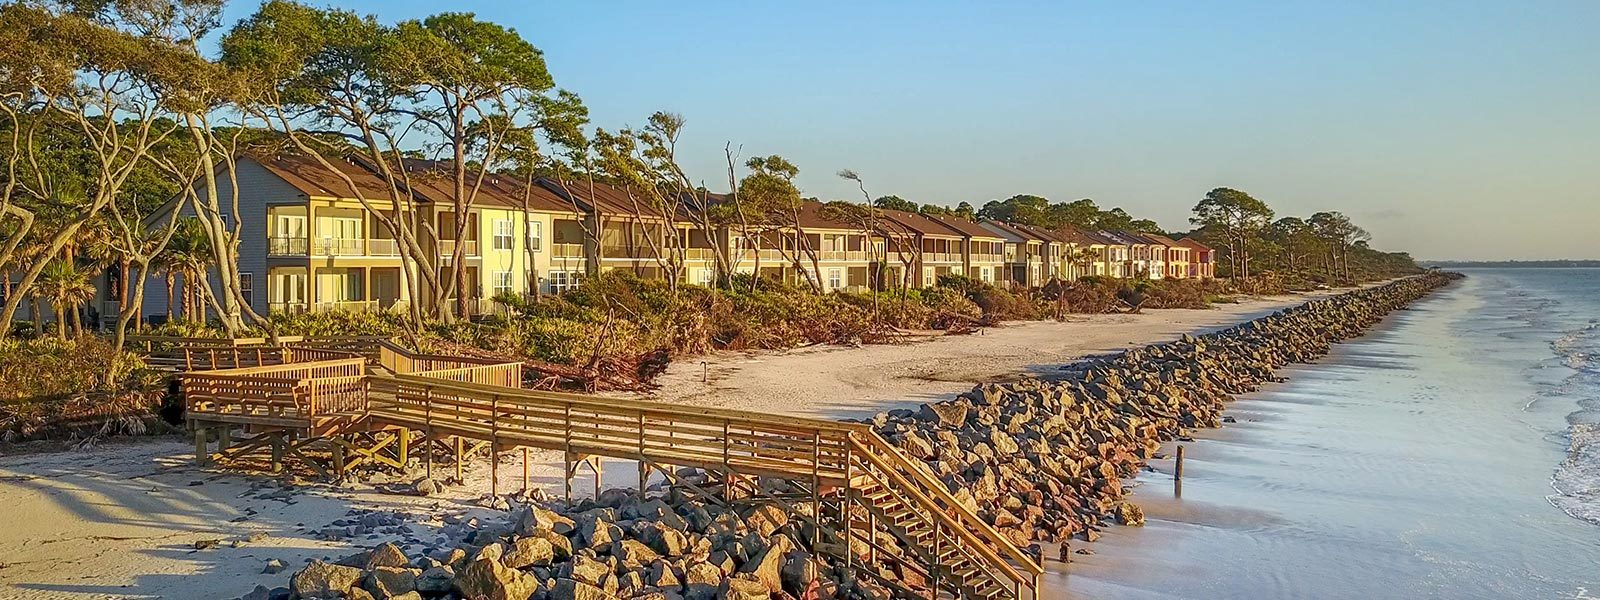 Cottages located on the beach at Jekyll Island